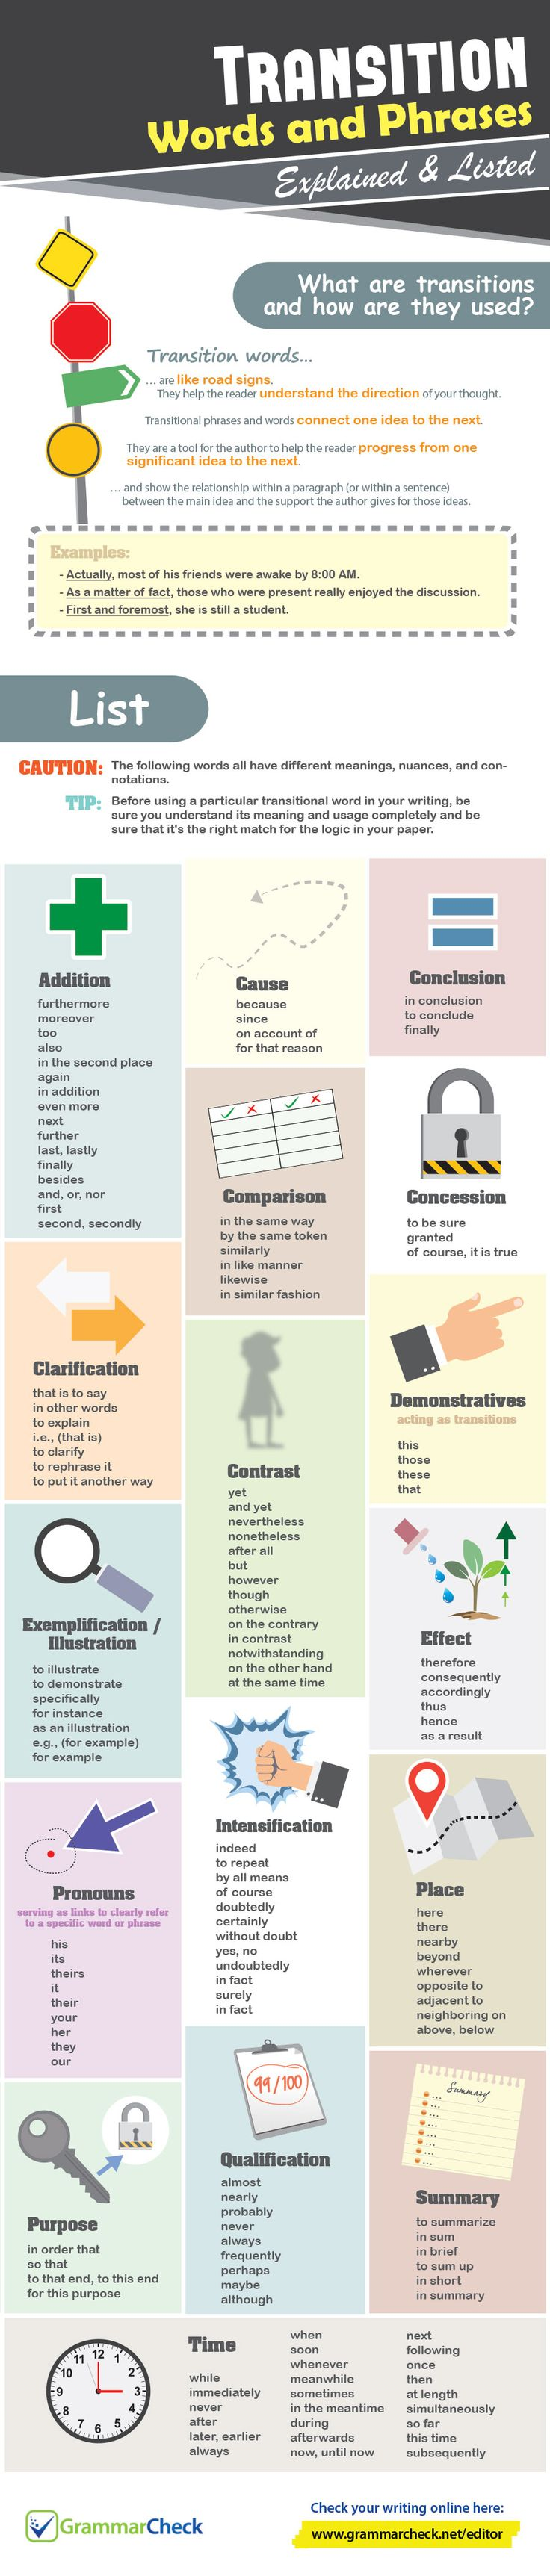 ideas about transition words creative writing transition words and phrases explained listed infographic